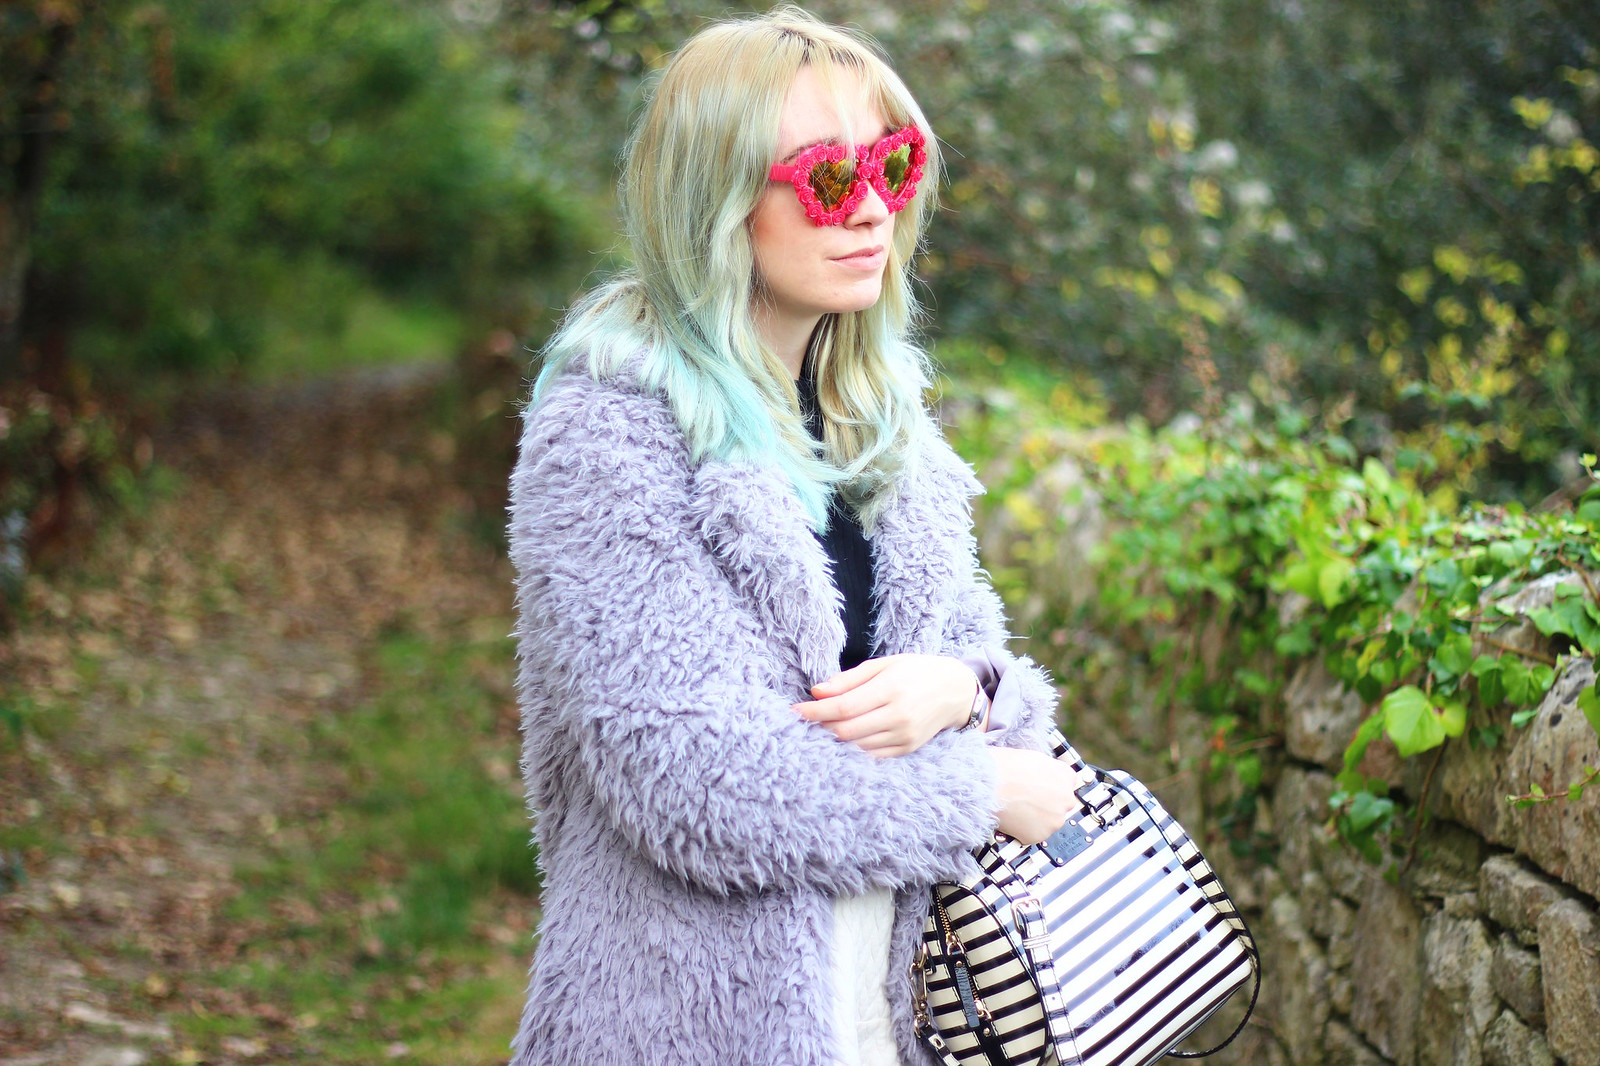 6heartglasses, pastel hair blogger, heart shaped sunglasses, style